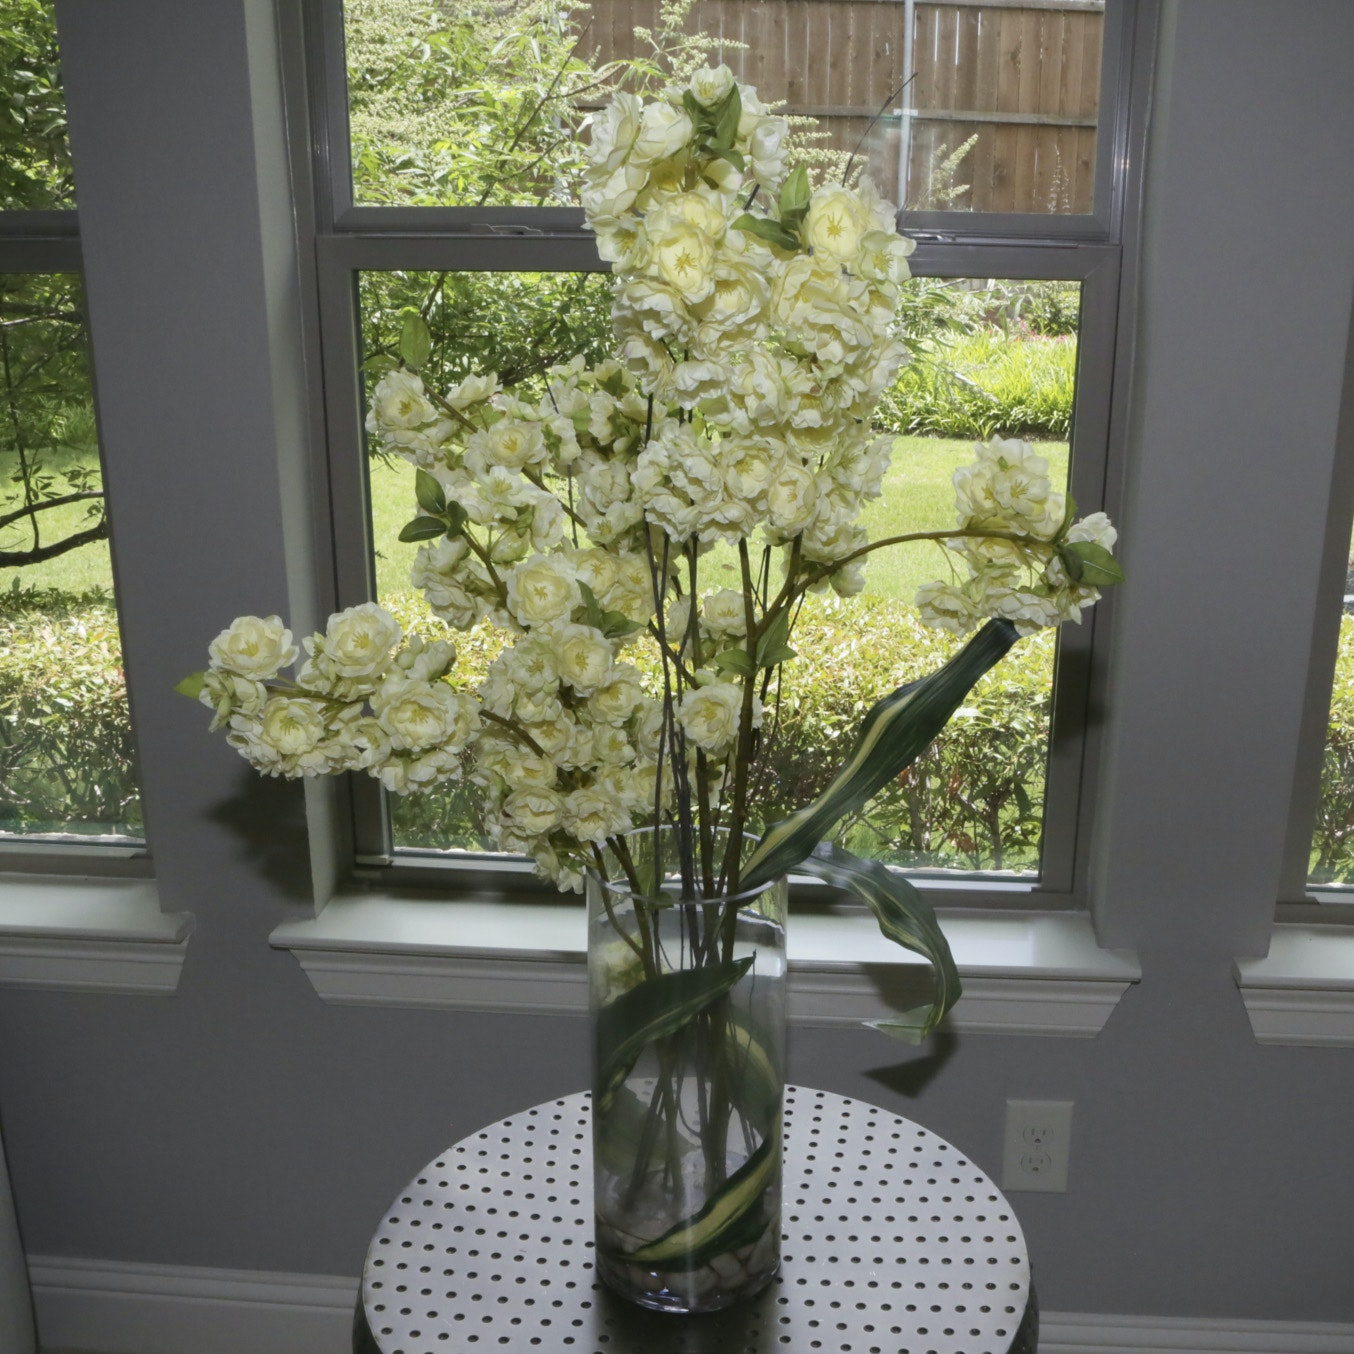 Cylindrical Glass Vase Filled with Bouquet of White Fabric Flowers